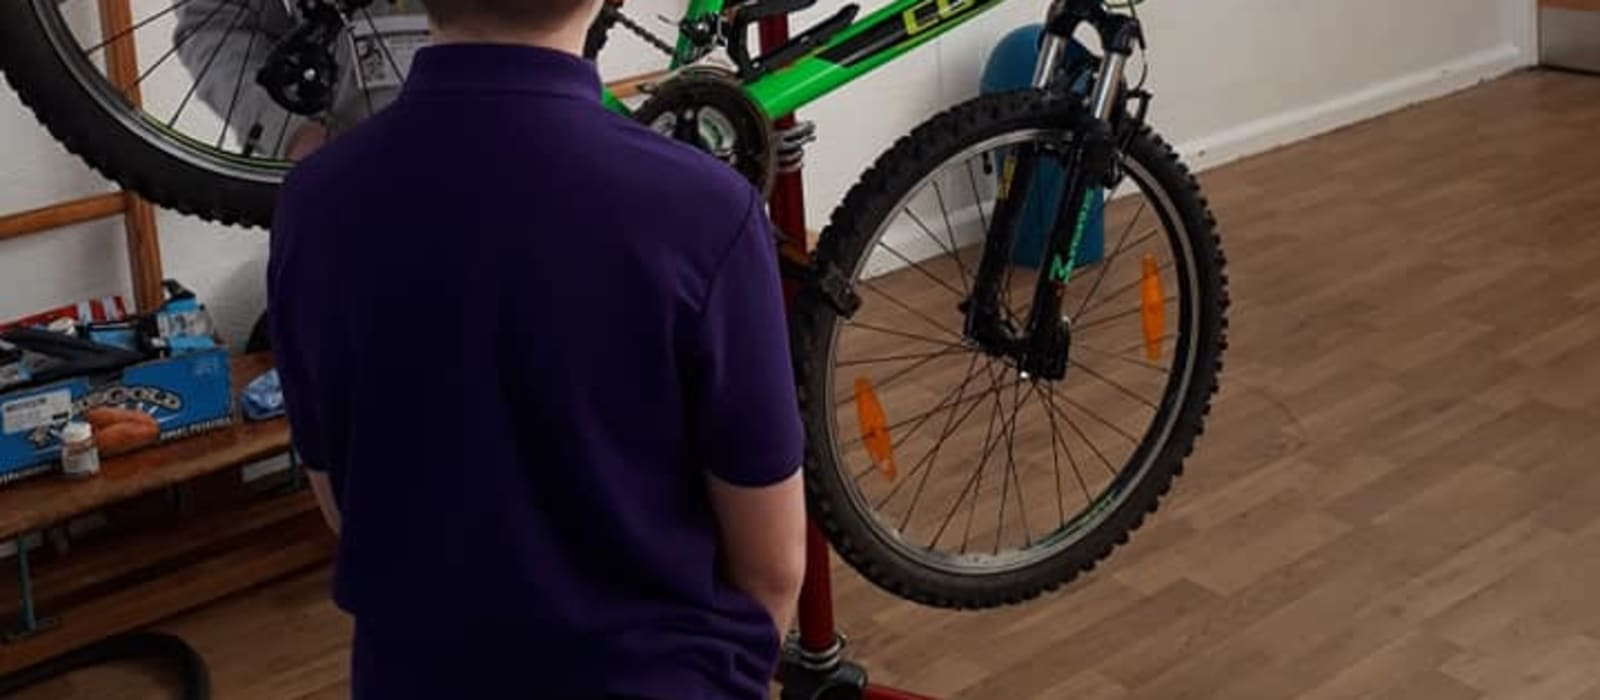 Dr Bike visits Fieldhead Carr Primary School